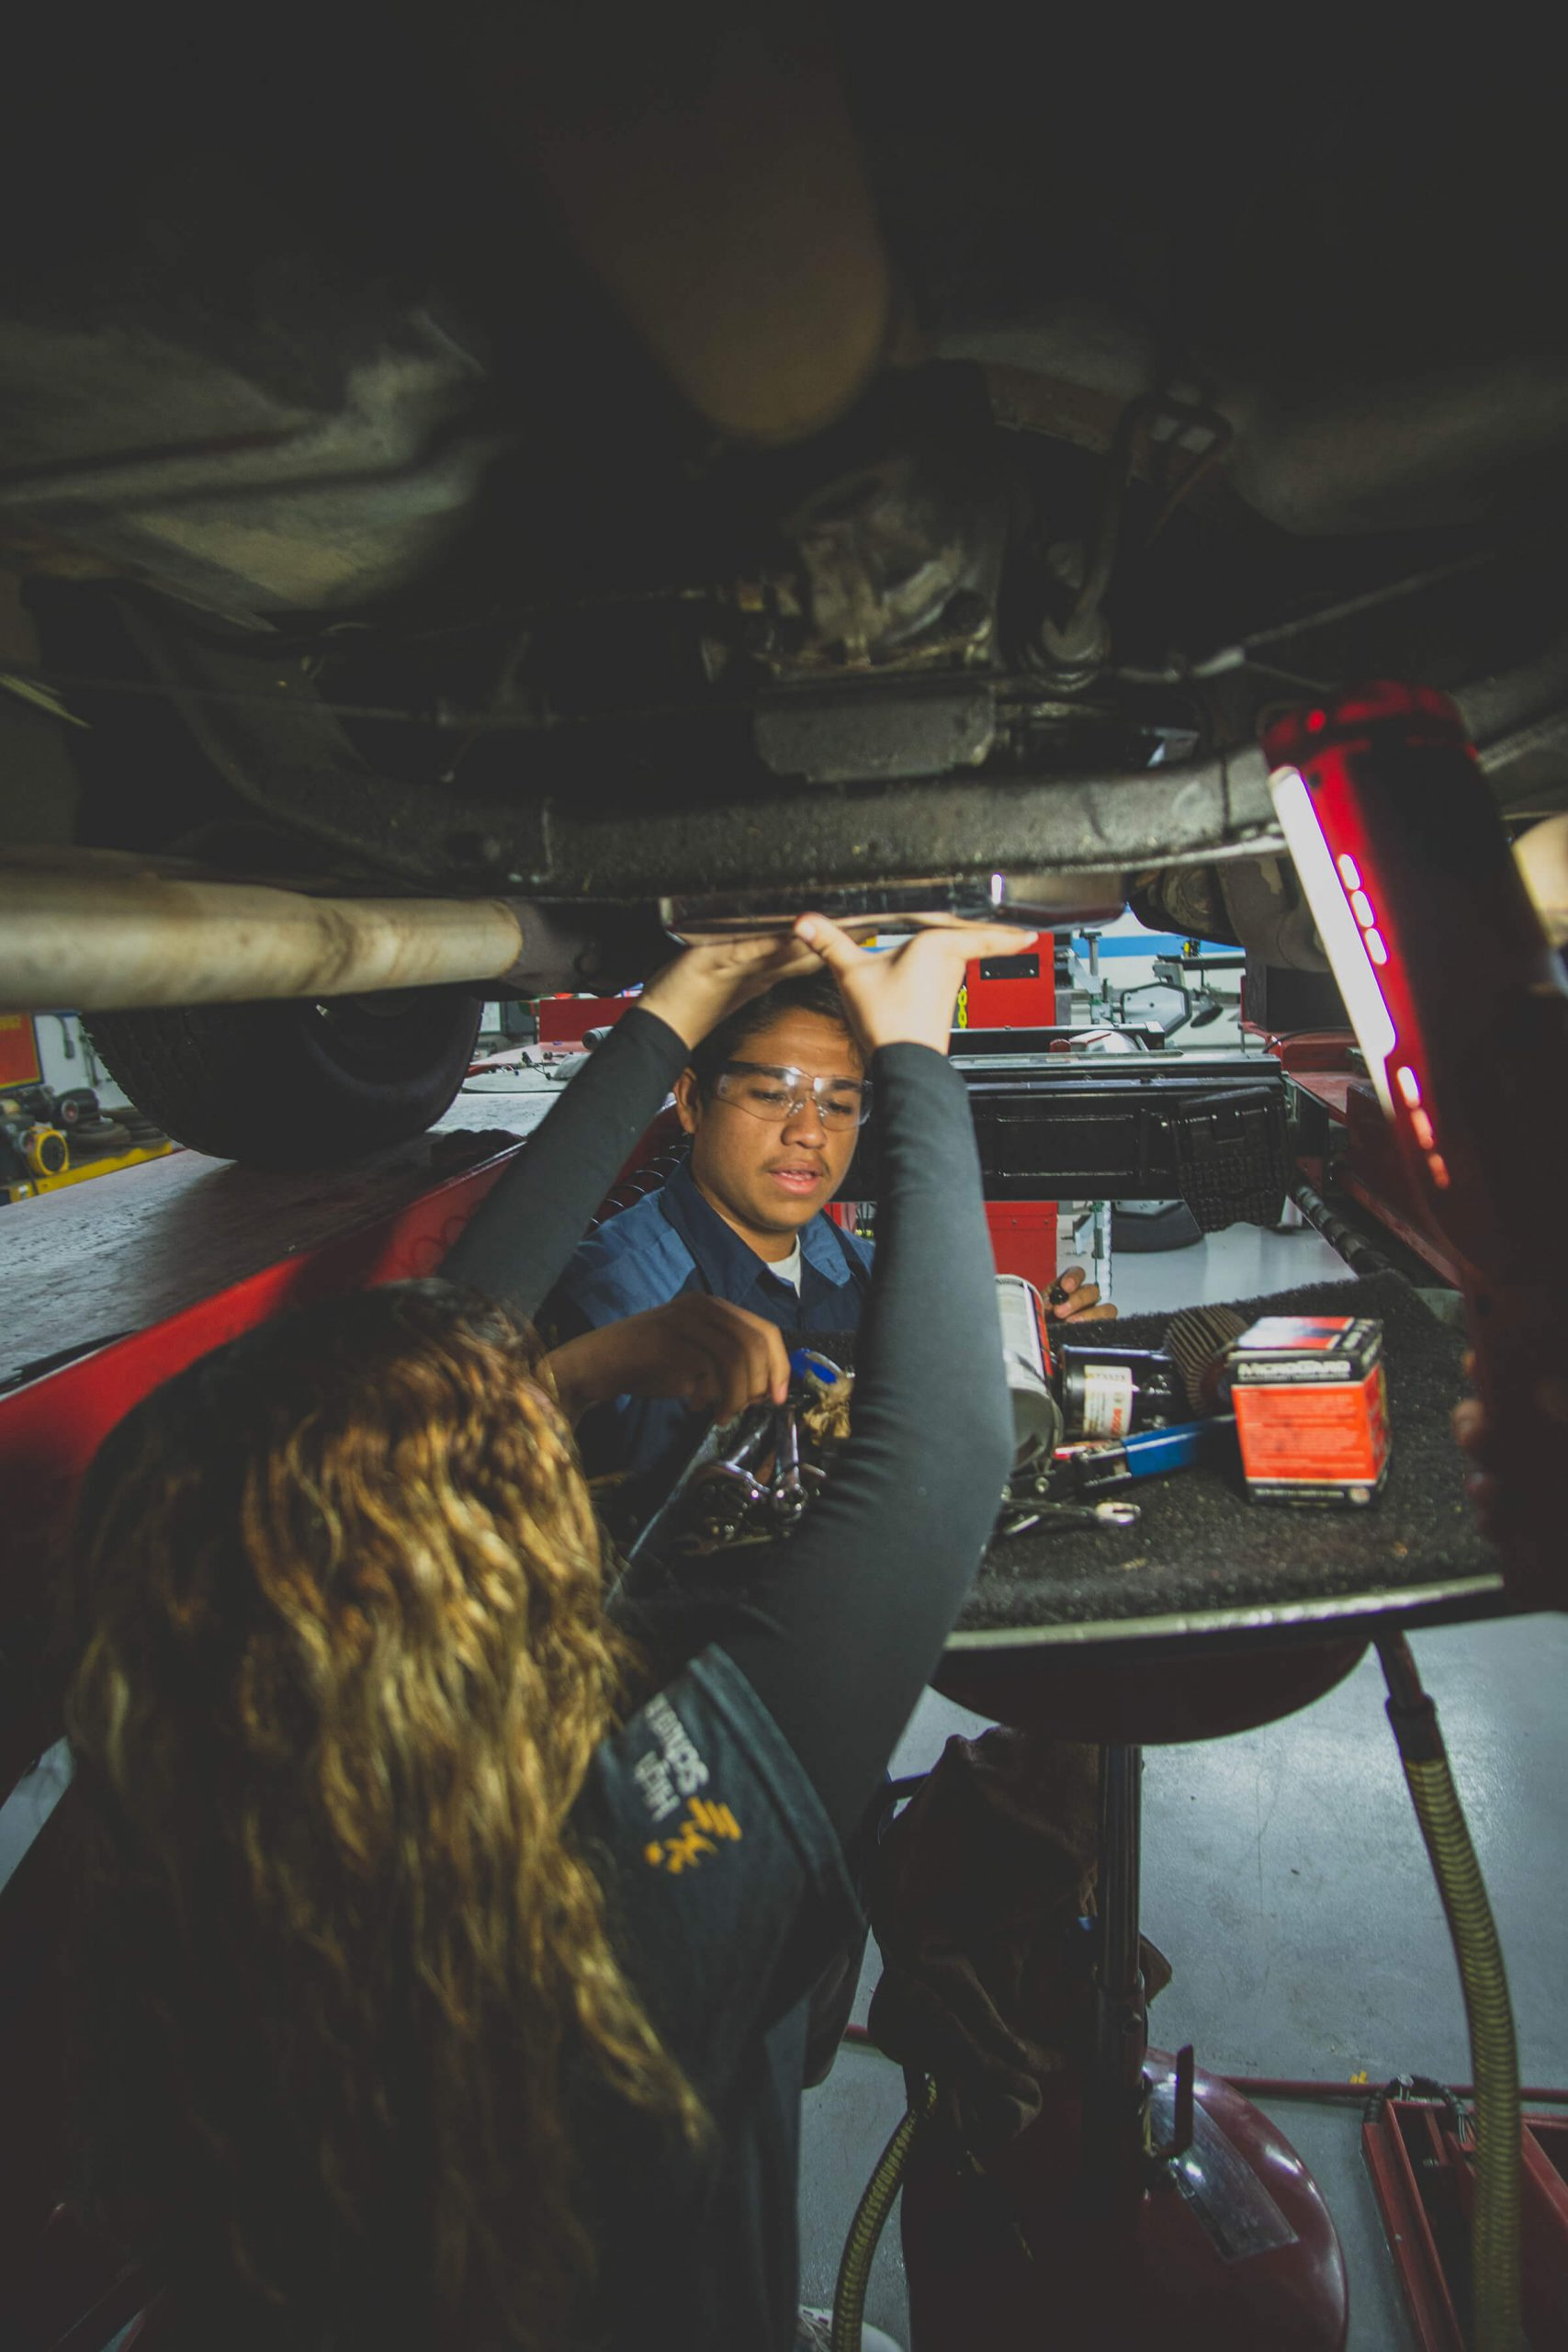 Students work under a raised automotive vehicle in a mechanic garage.